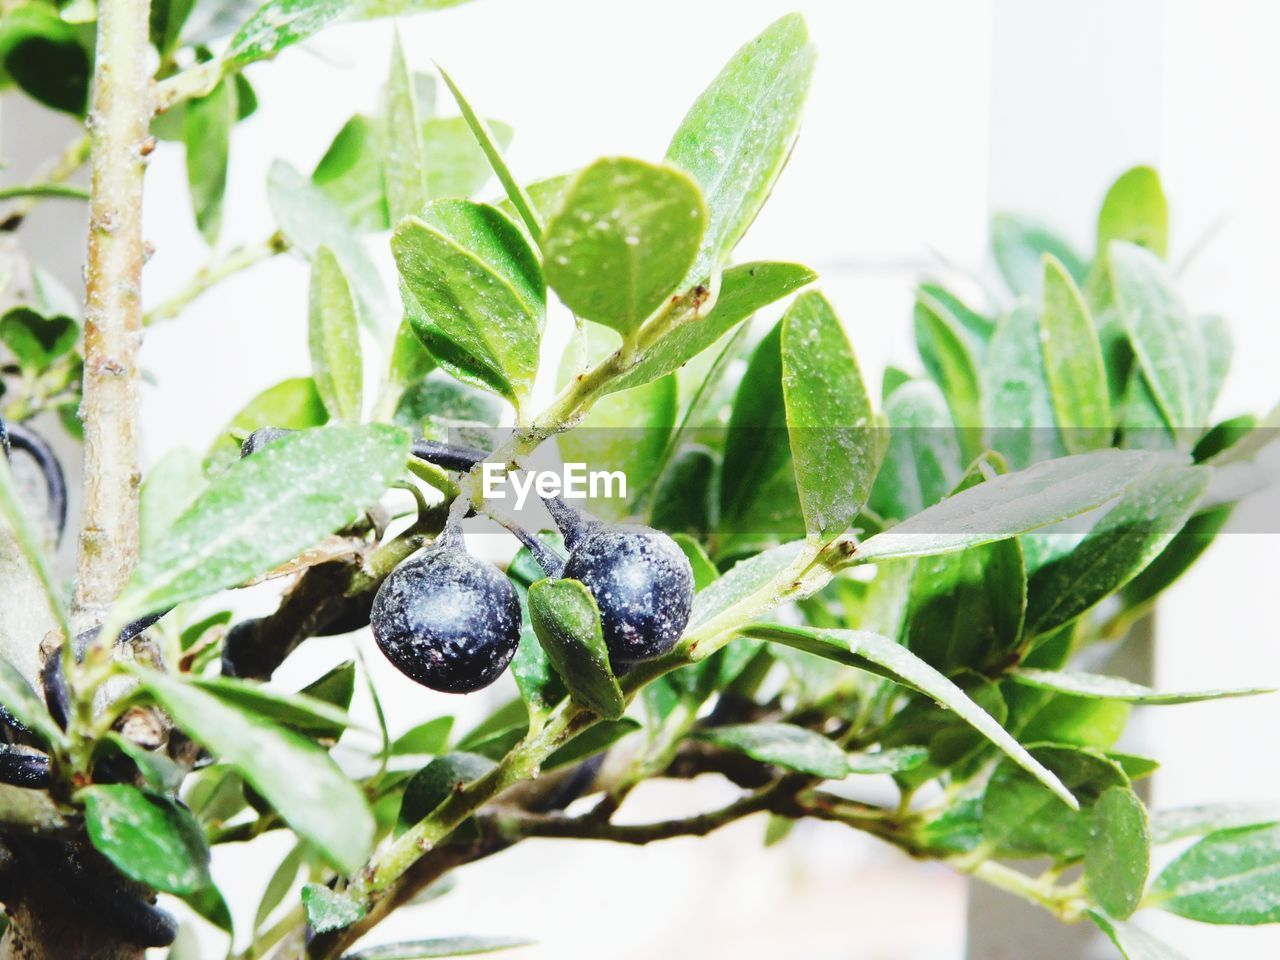 leaf, plant part, fruit, plant, healthy eating, food, no people, food and drink, close-up, nature, growth, green color, berry fruit, focus on foreground, wellbeing, freshness, day, ripe, blueberry, selective focus